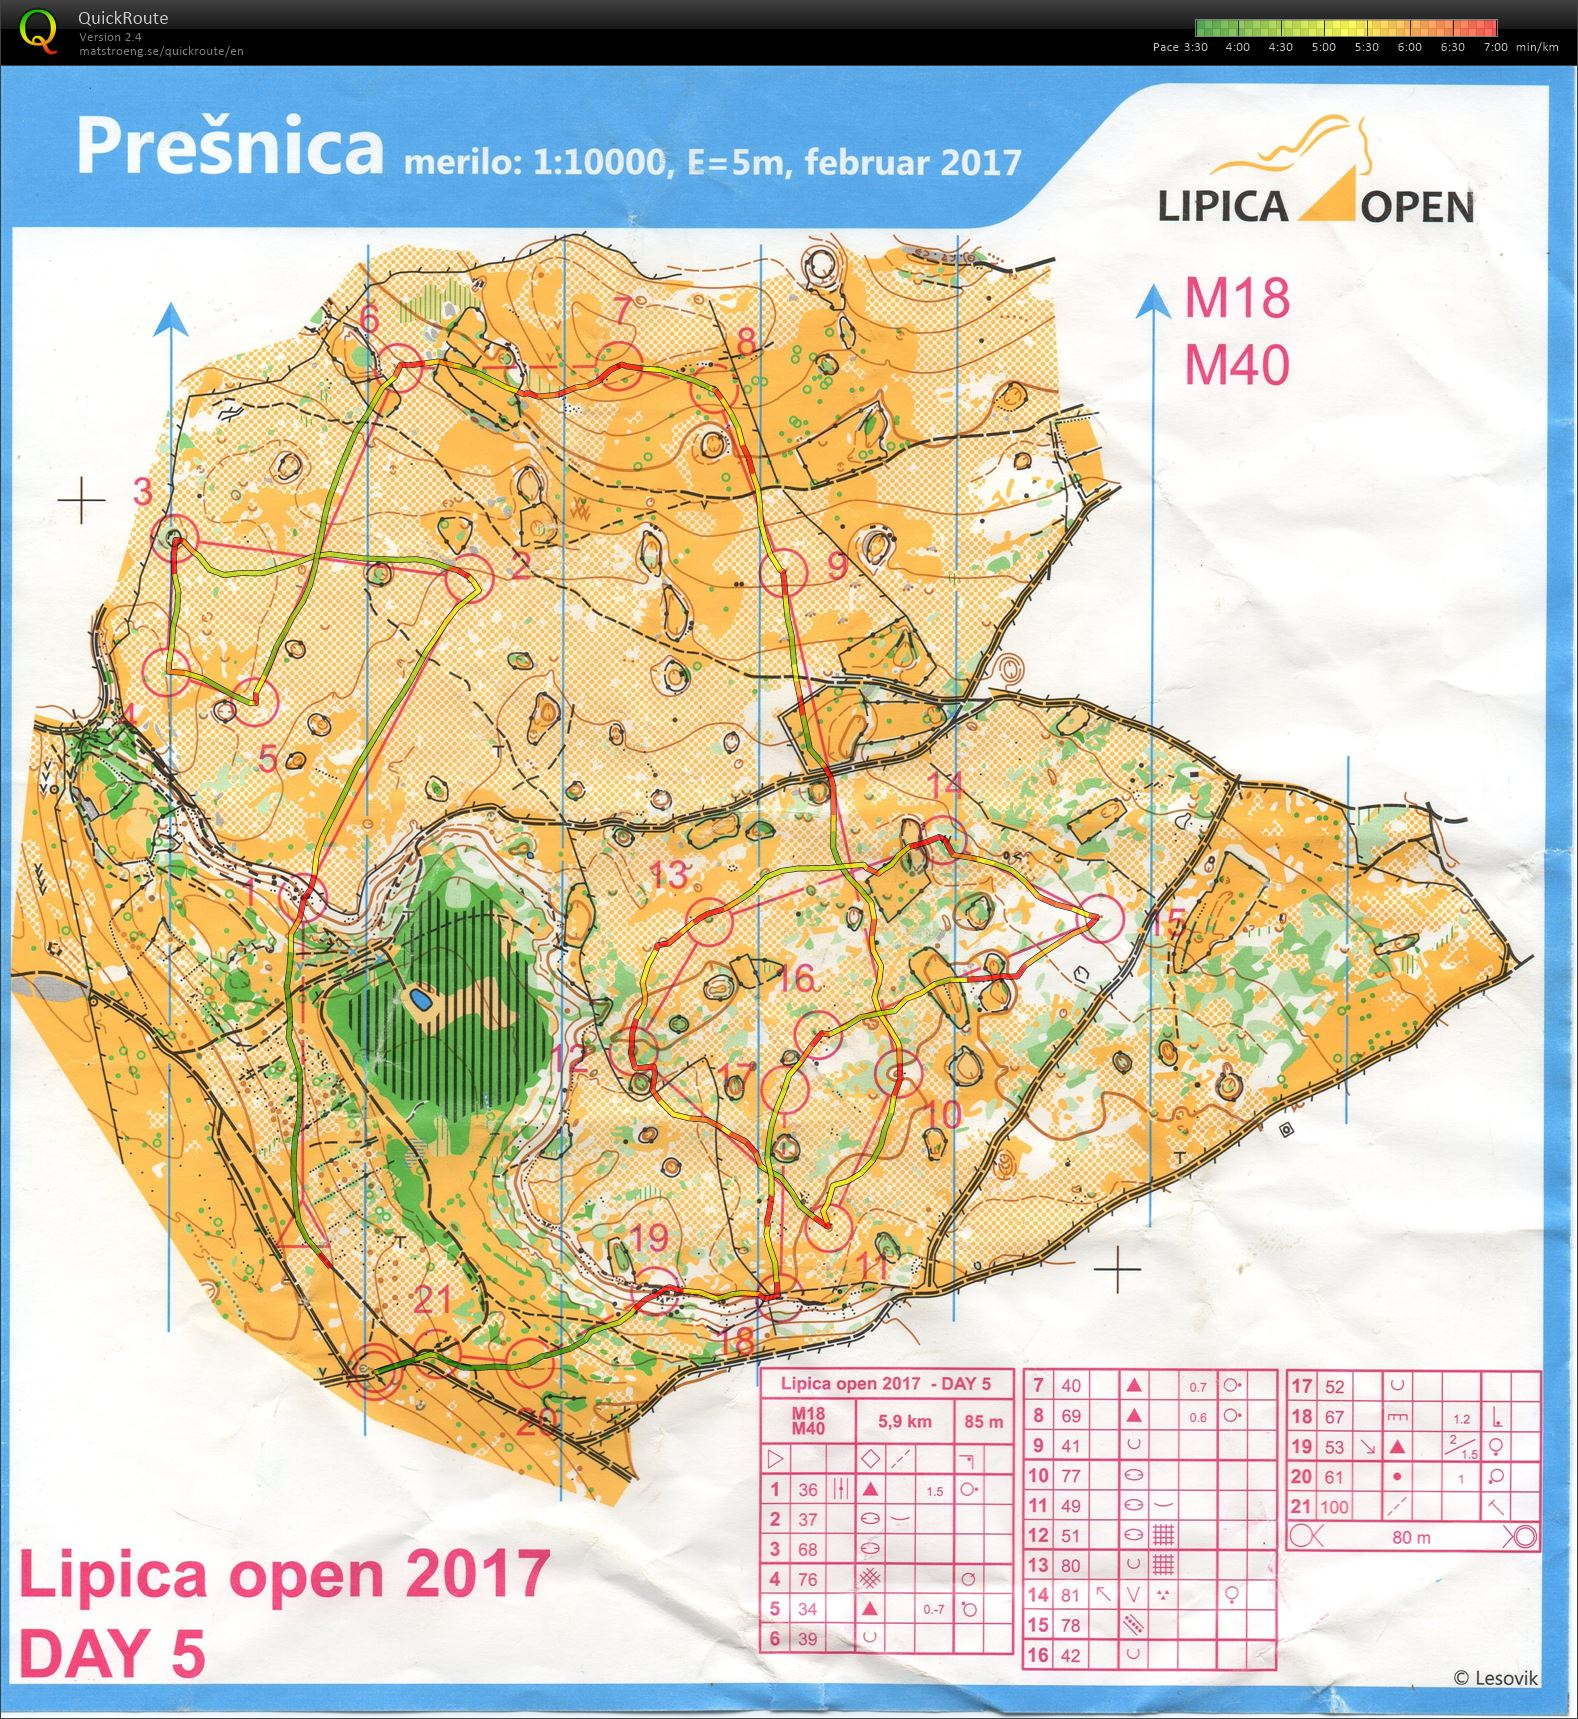 LipicaOpen 2017 - stage5 (15. 03. 2017)